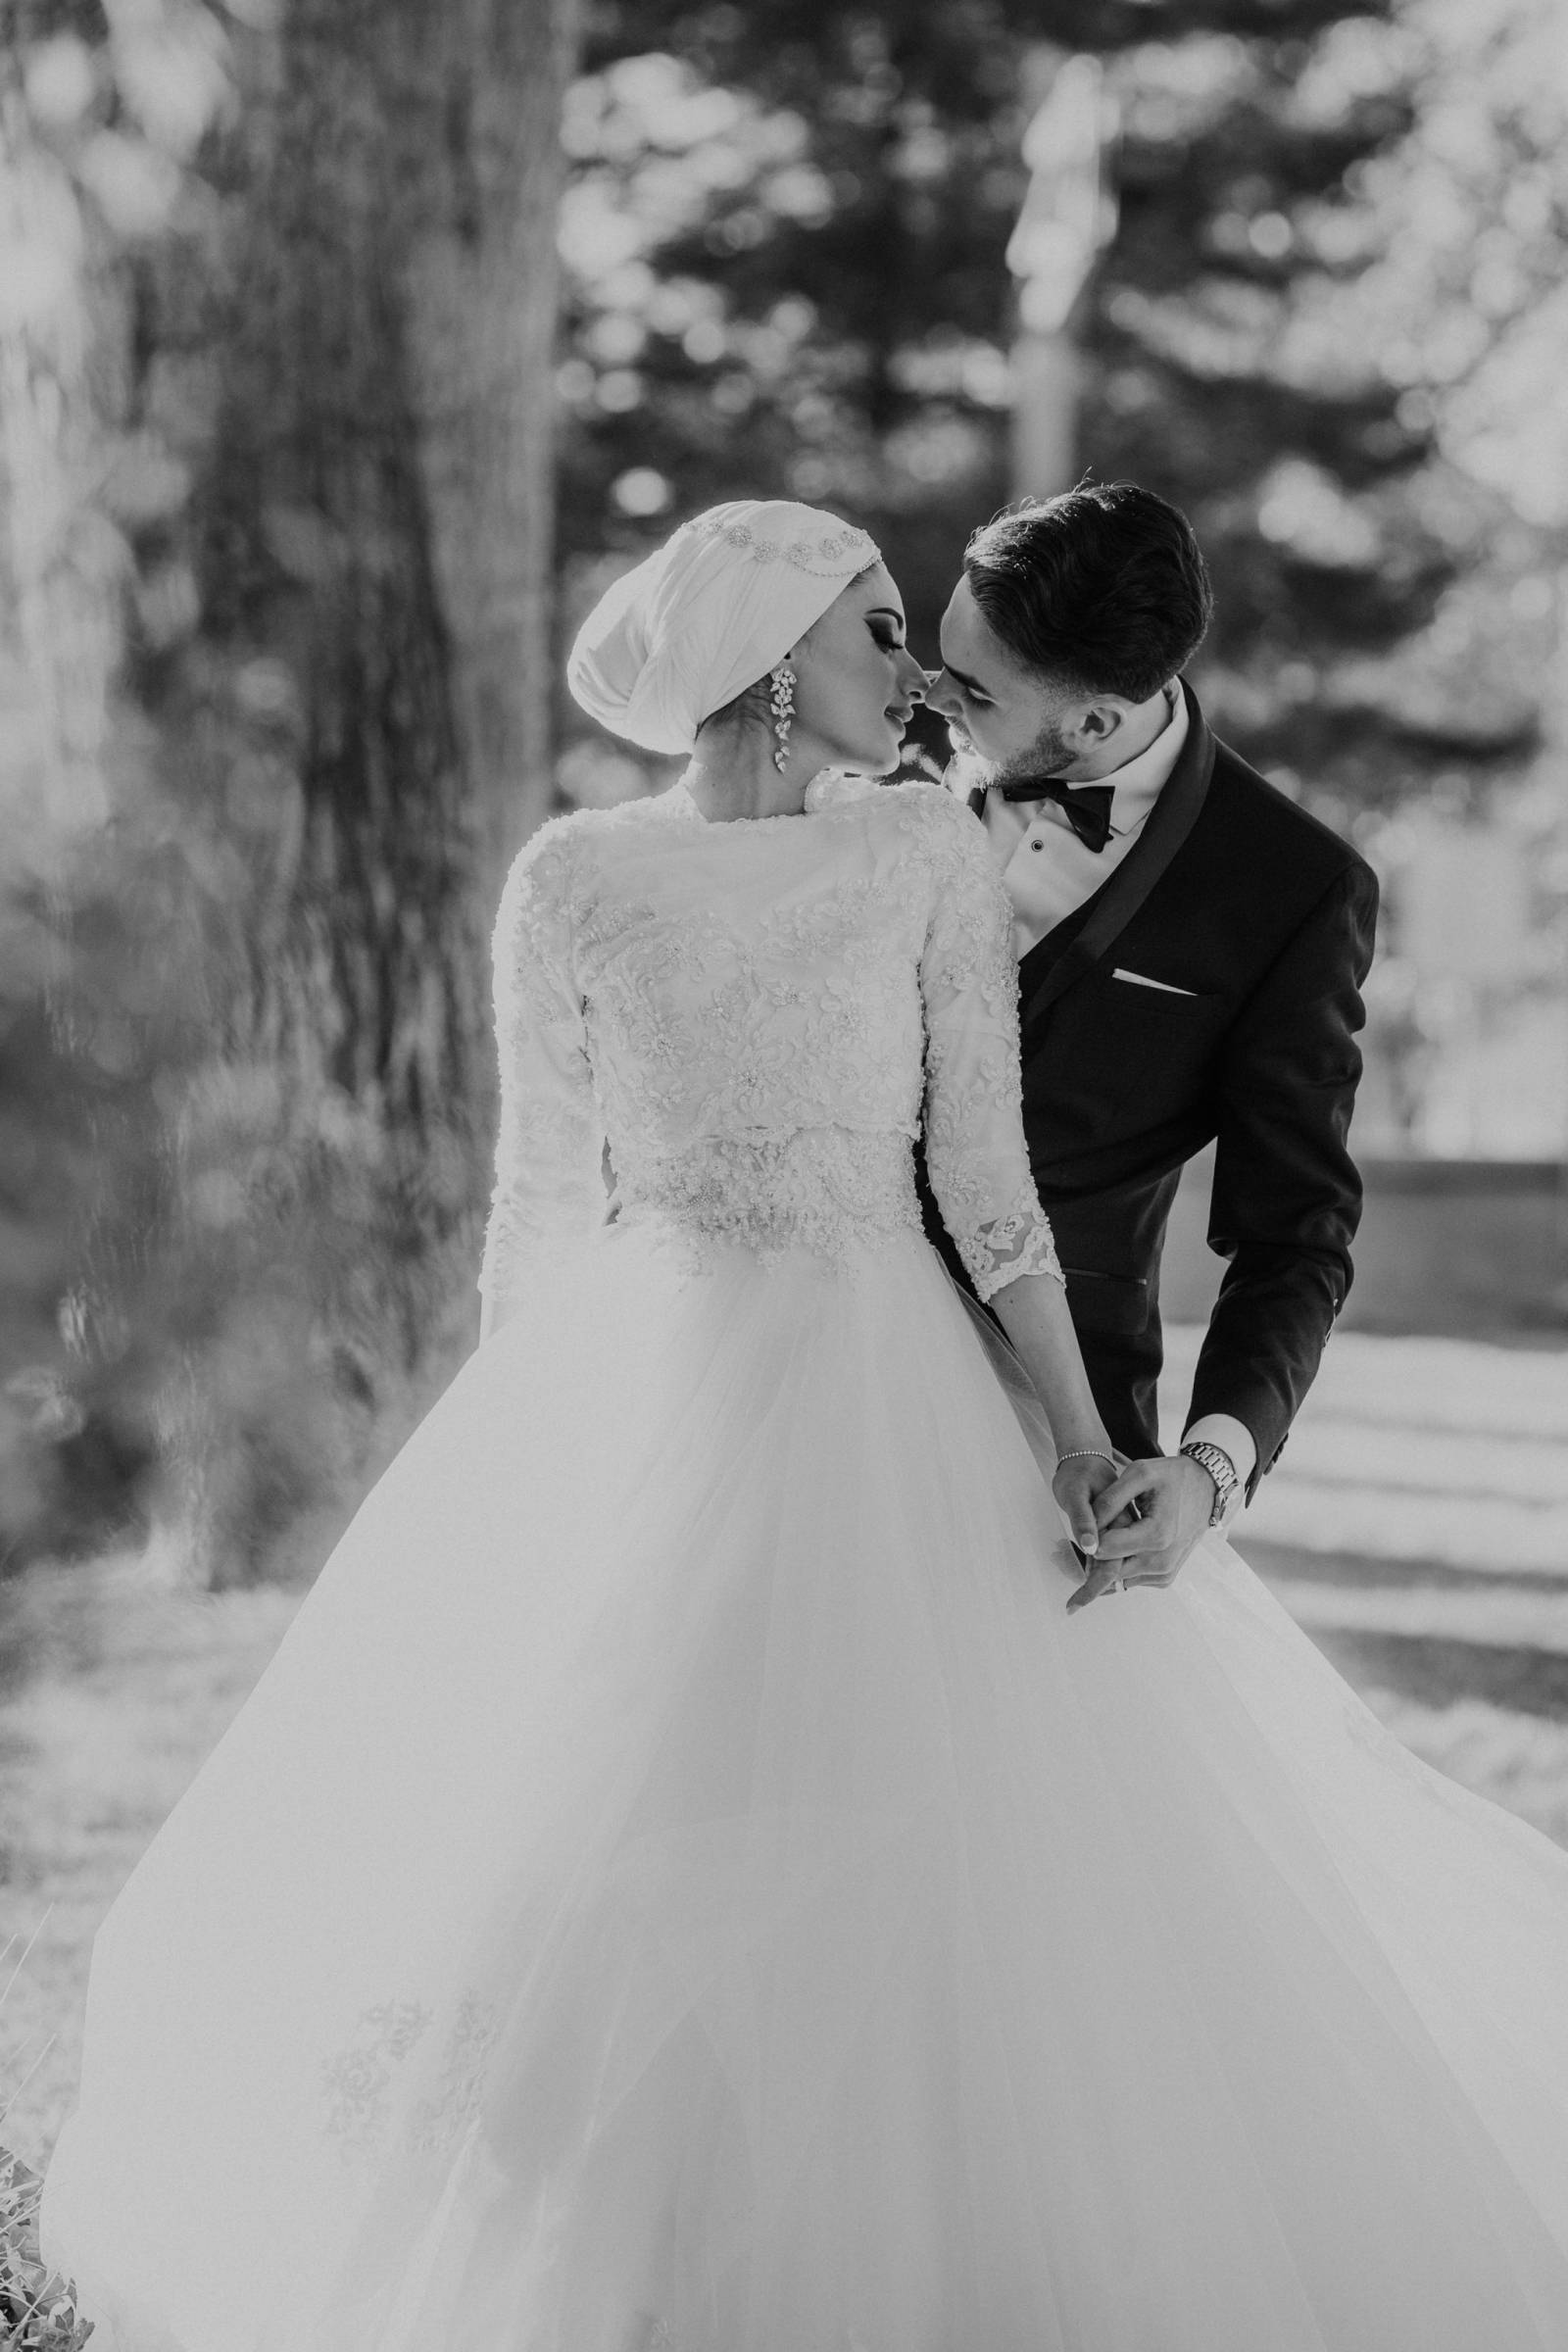 vintage wedding portrait of bride and groom captured by Albuquerque photographer Blue Rose Photograp